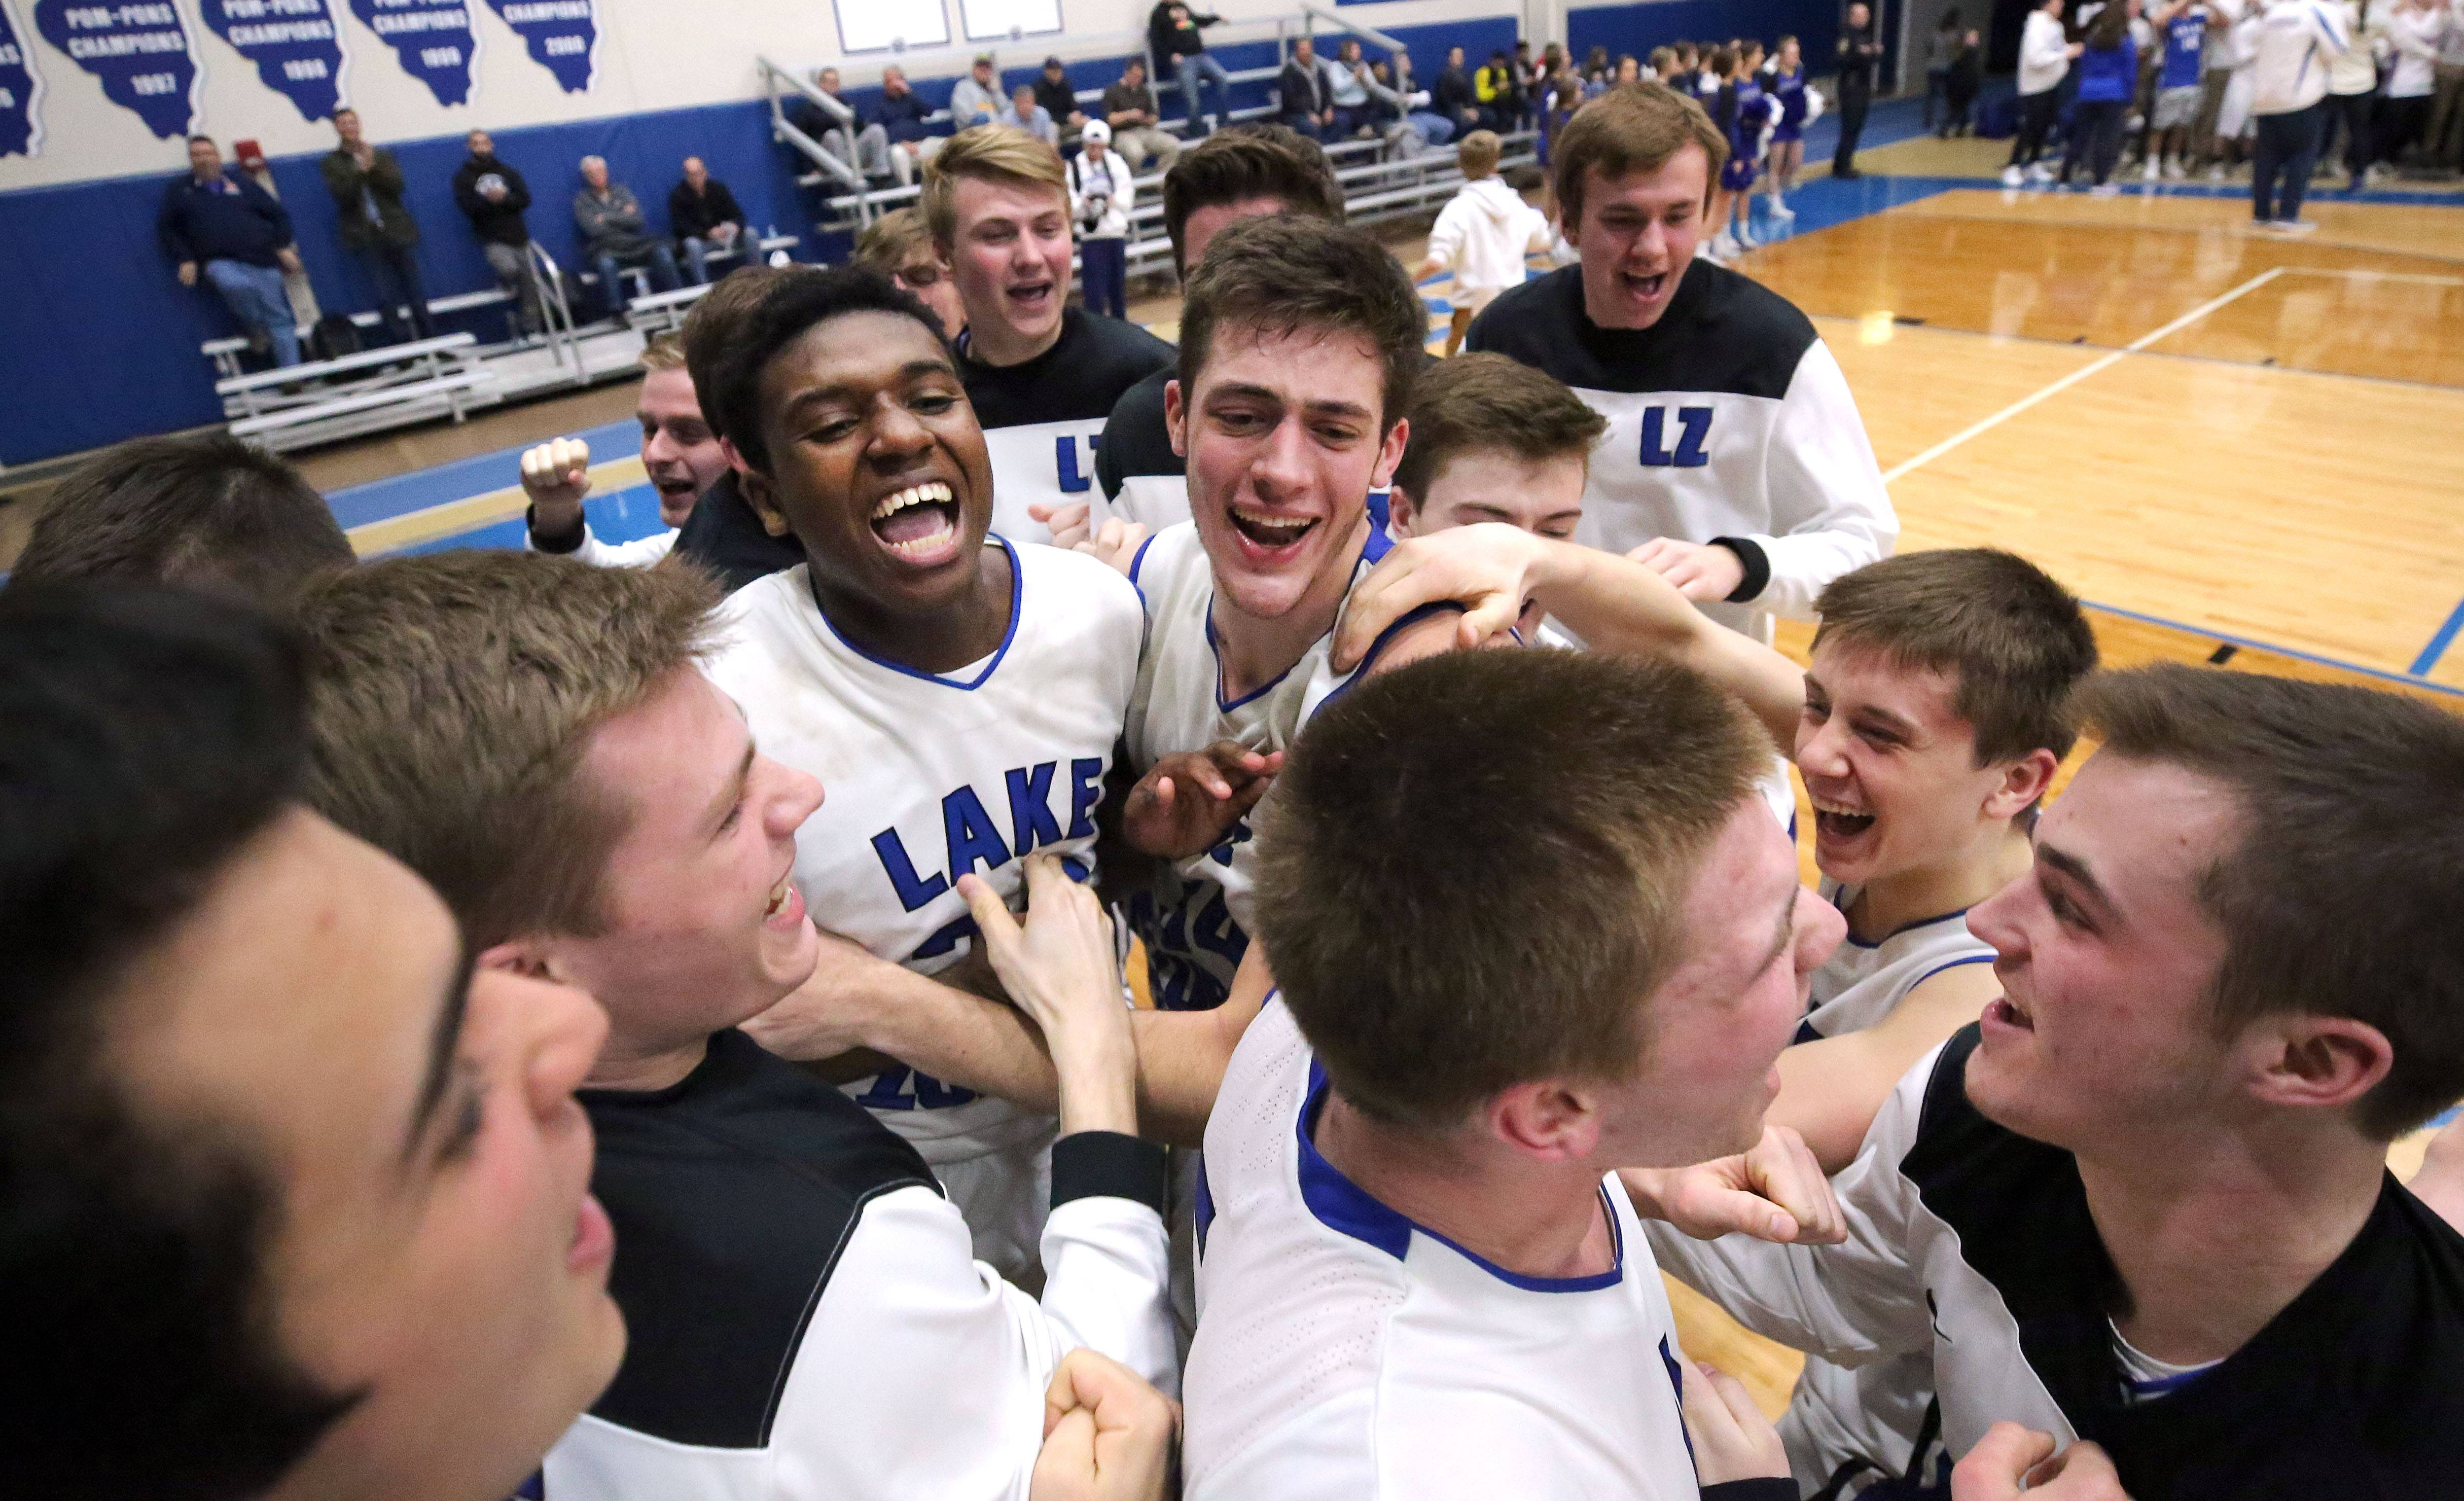 Lake Zurich players celebrate after beating Libertyville 54-50 in the Class 4A sectional semifinal at Lake Zurich High School on Tuesday.